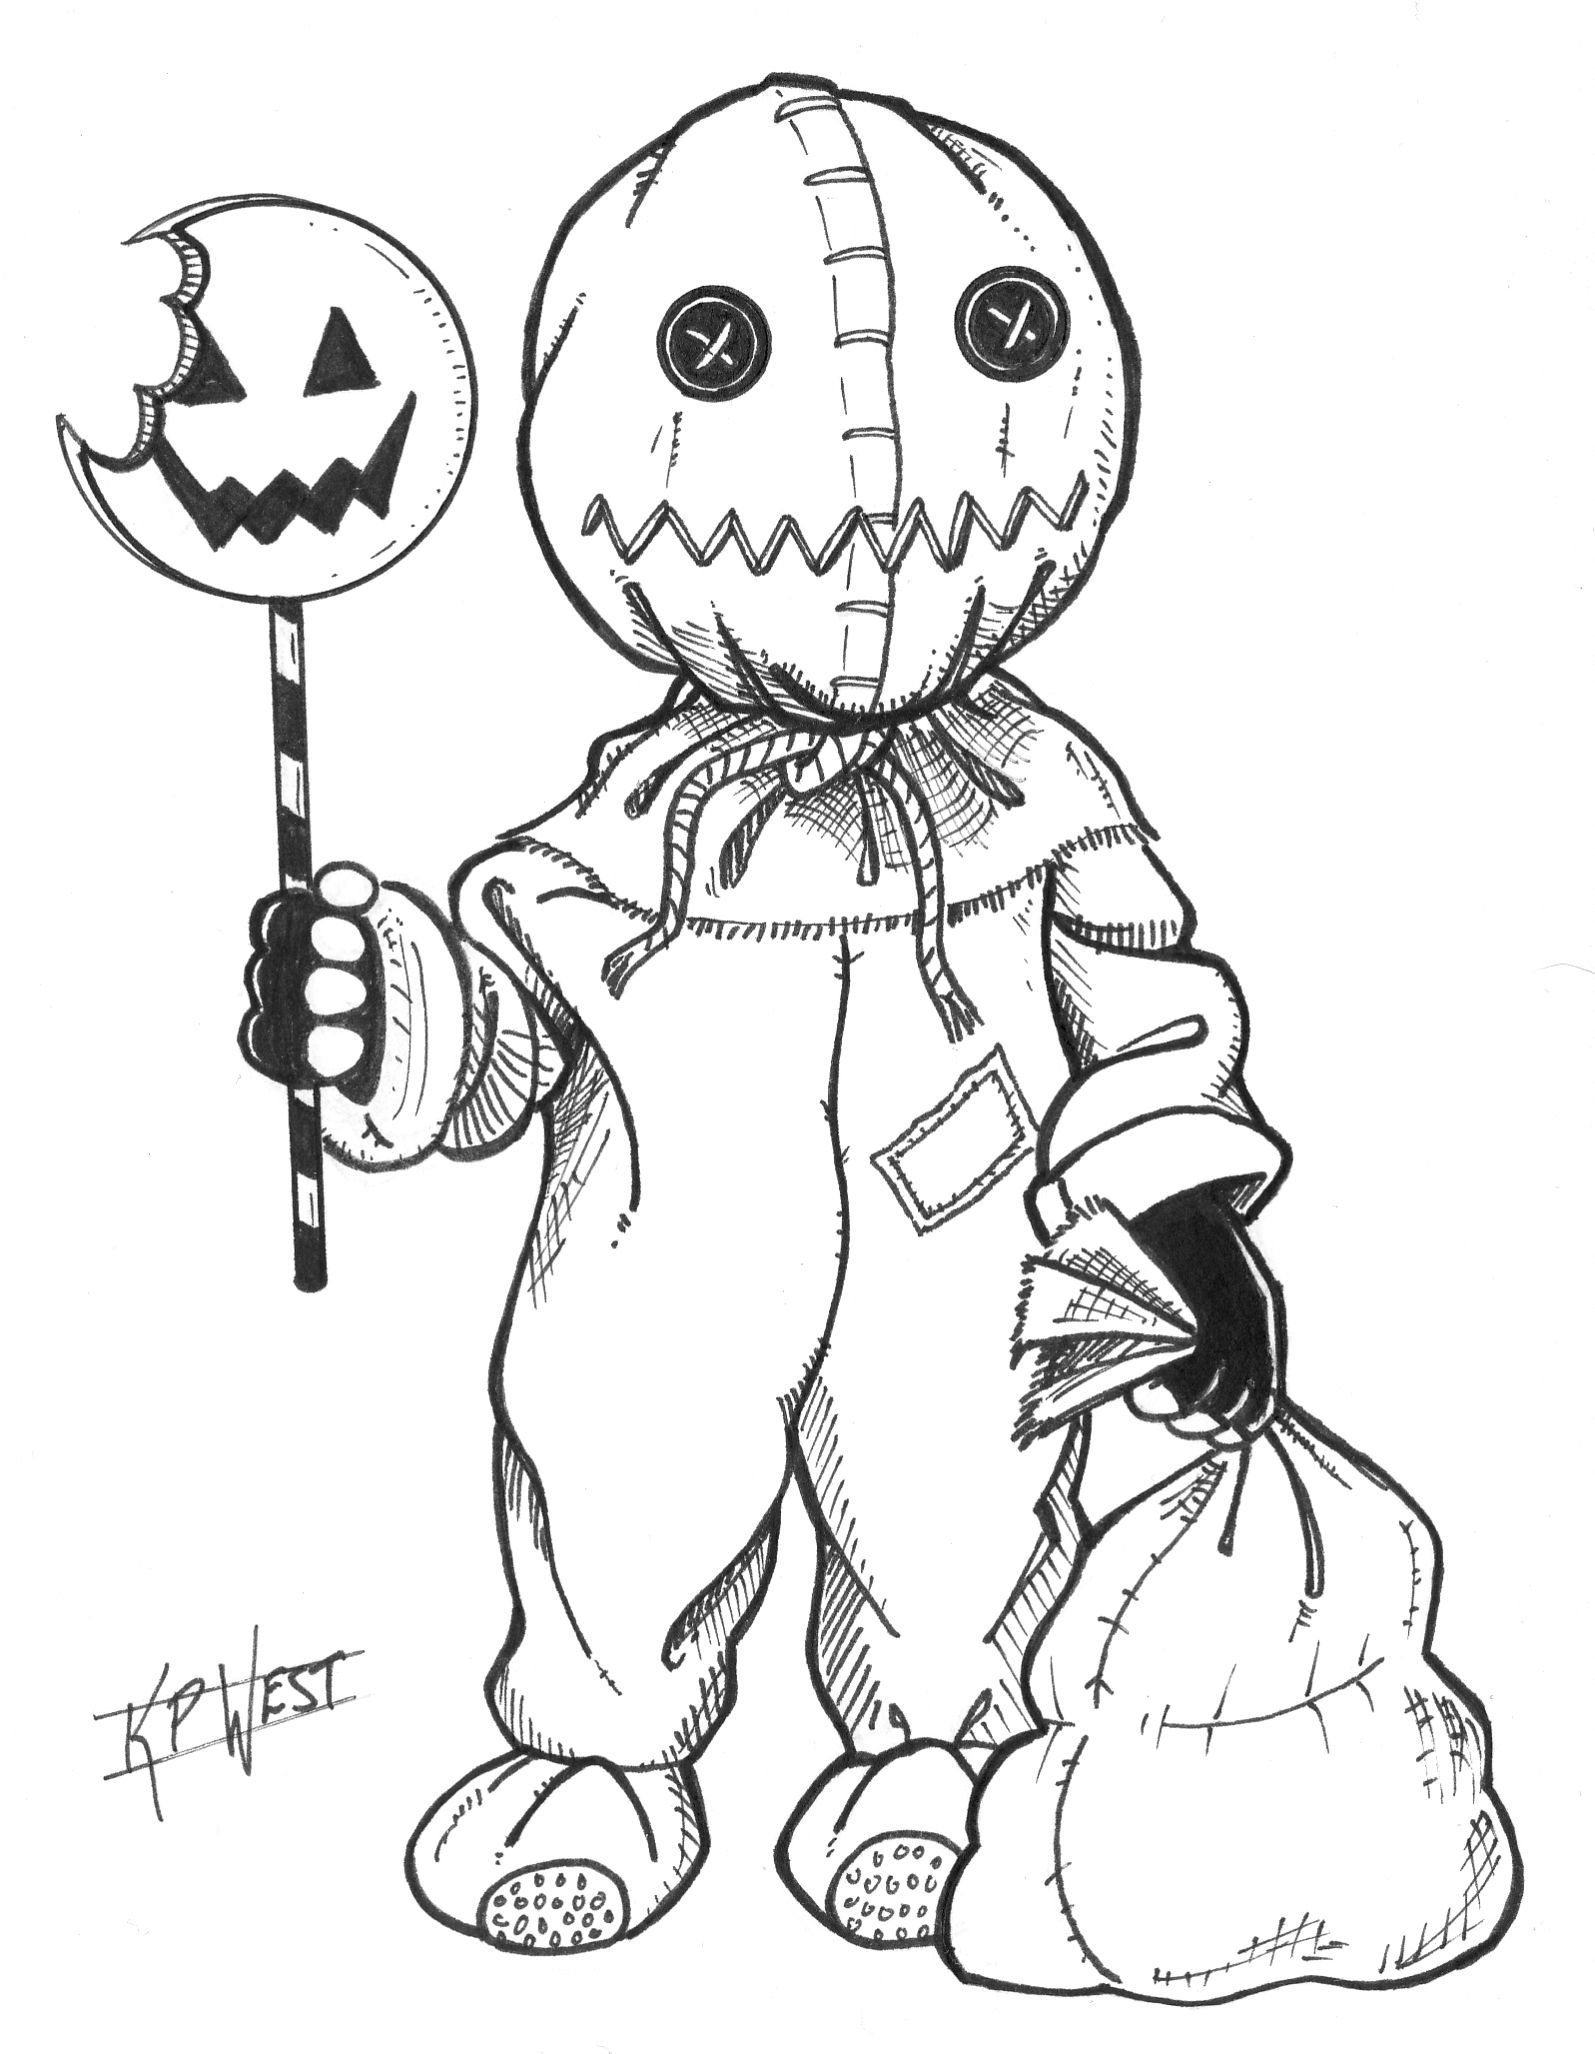 Day 02 Of Monster Month 2014 Sam In 2020 Halloween Drawings